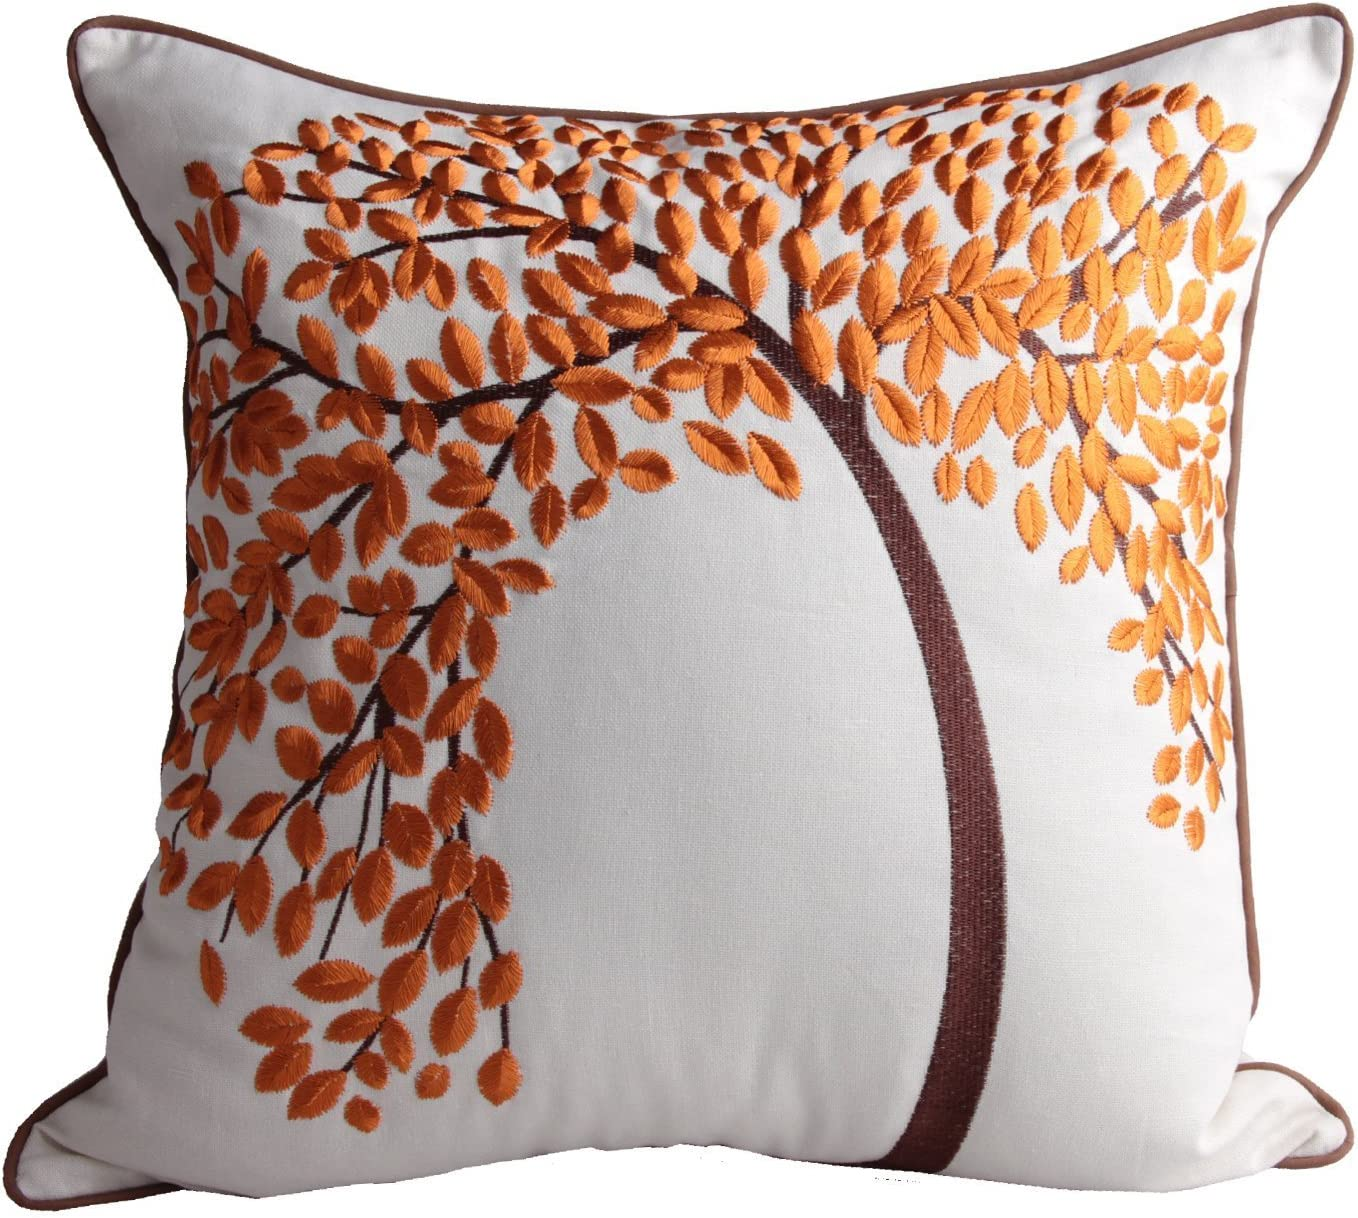 """2 X LUXURY FLORAL GOLD BROWN WITH PIPING Cushion Covers 18/""""x18/"""" 45cm x 45cm"""